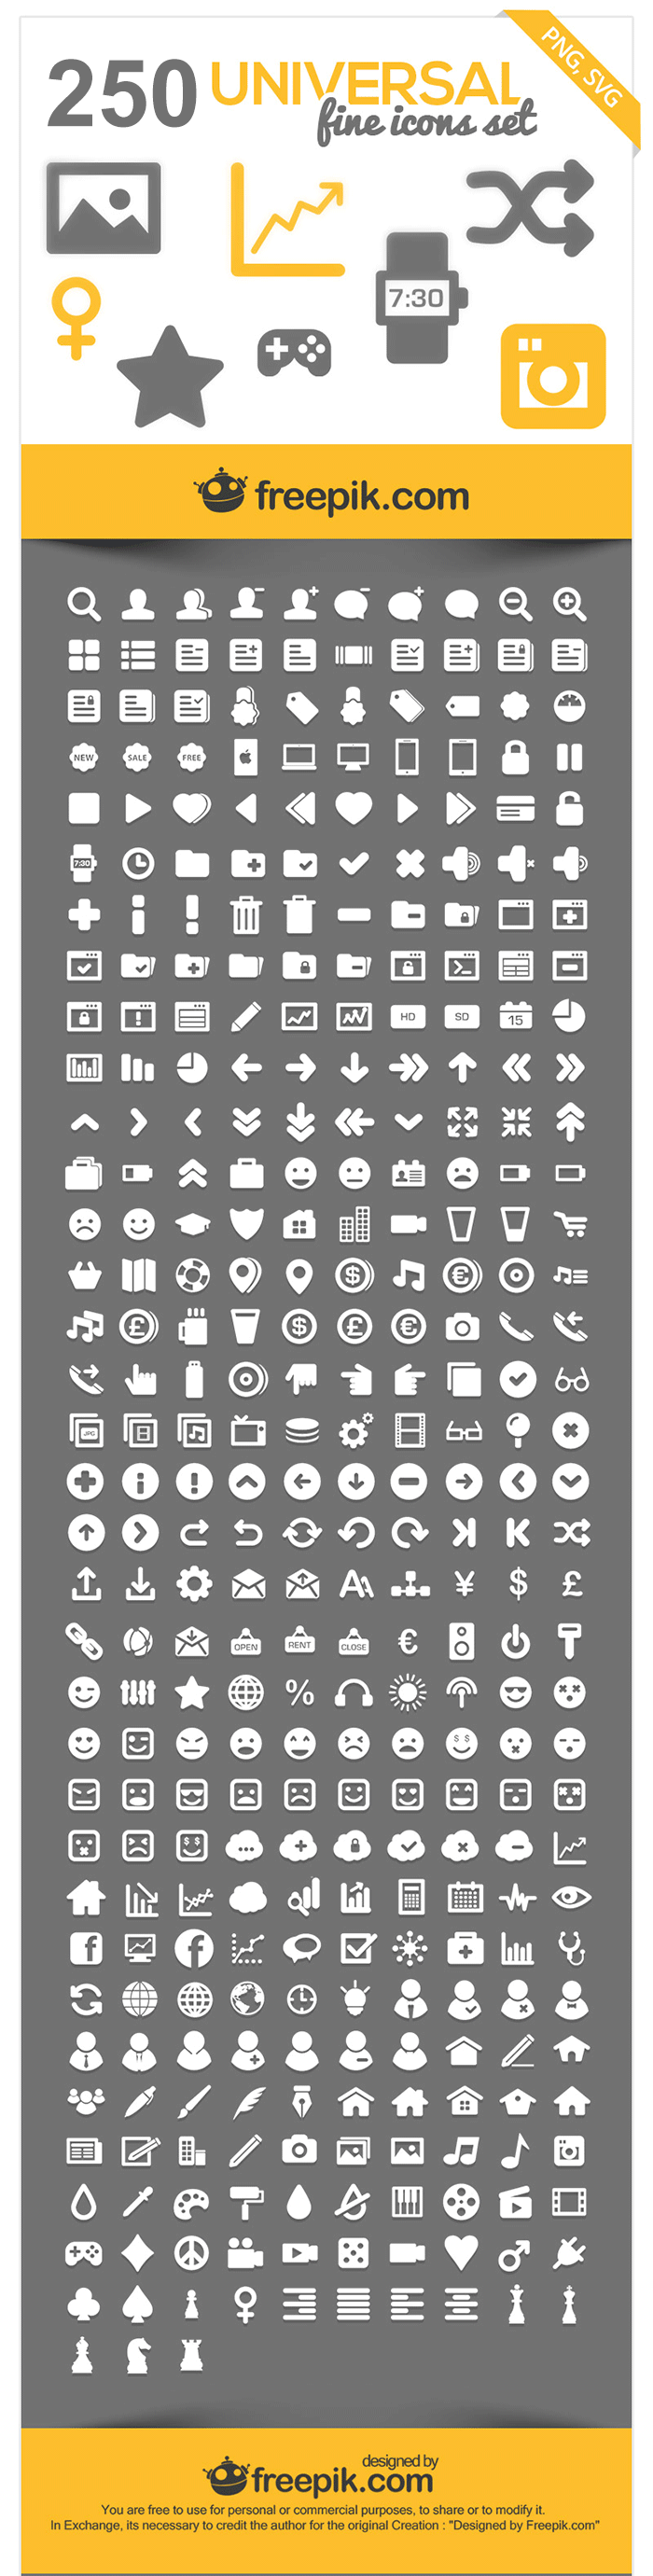 Universal Icons Pack